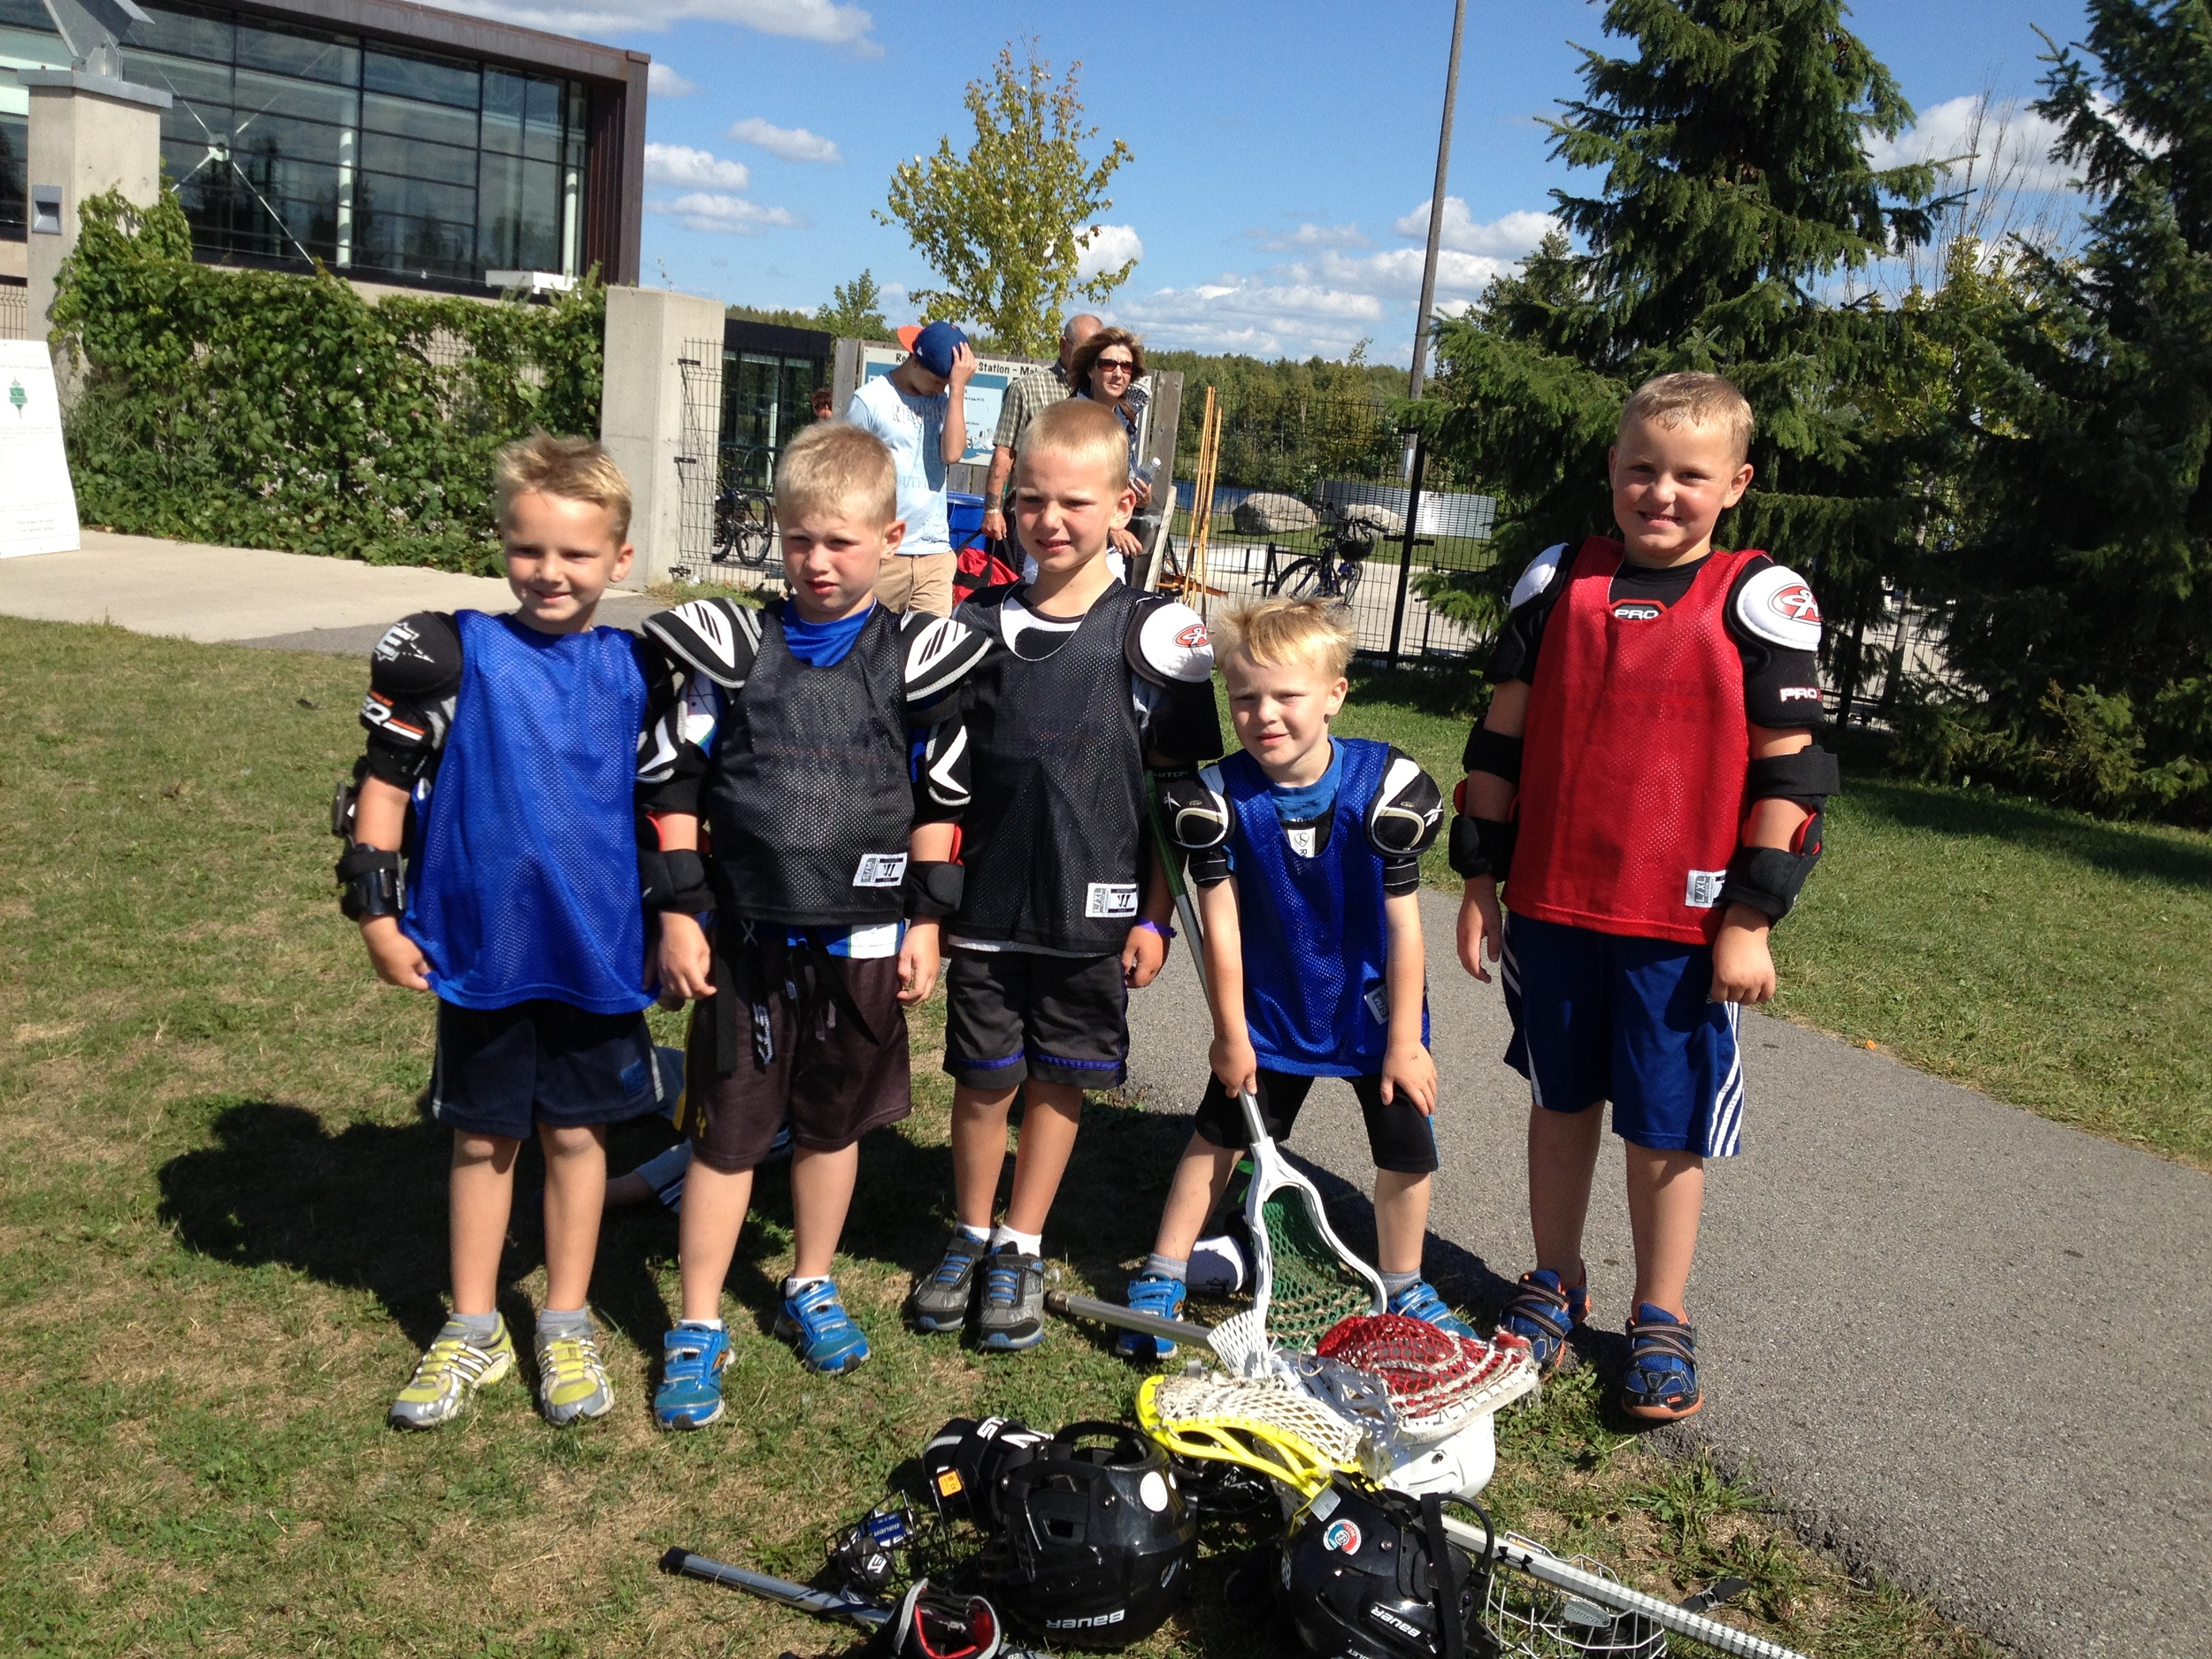 Happy campers at Nationwide Lacrosse